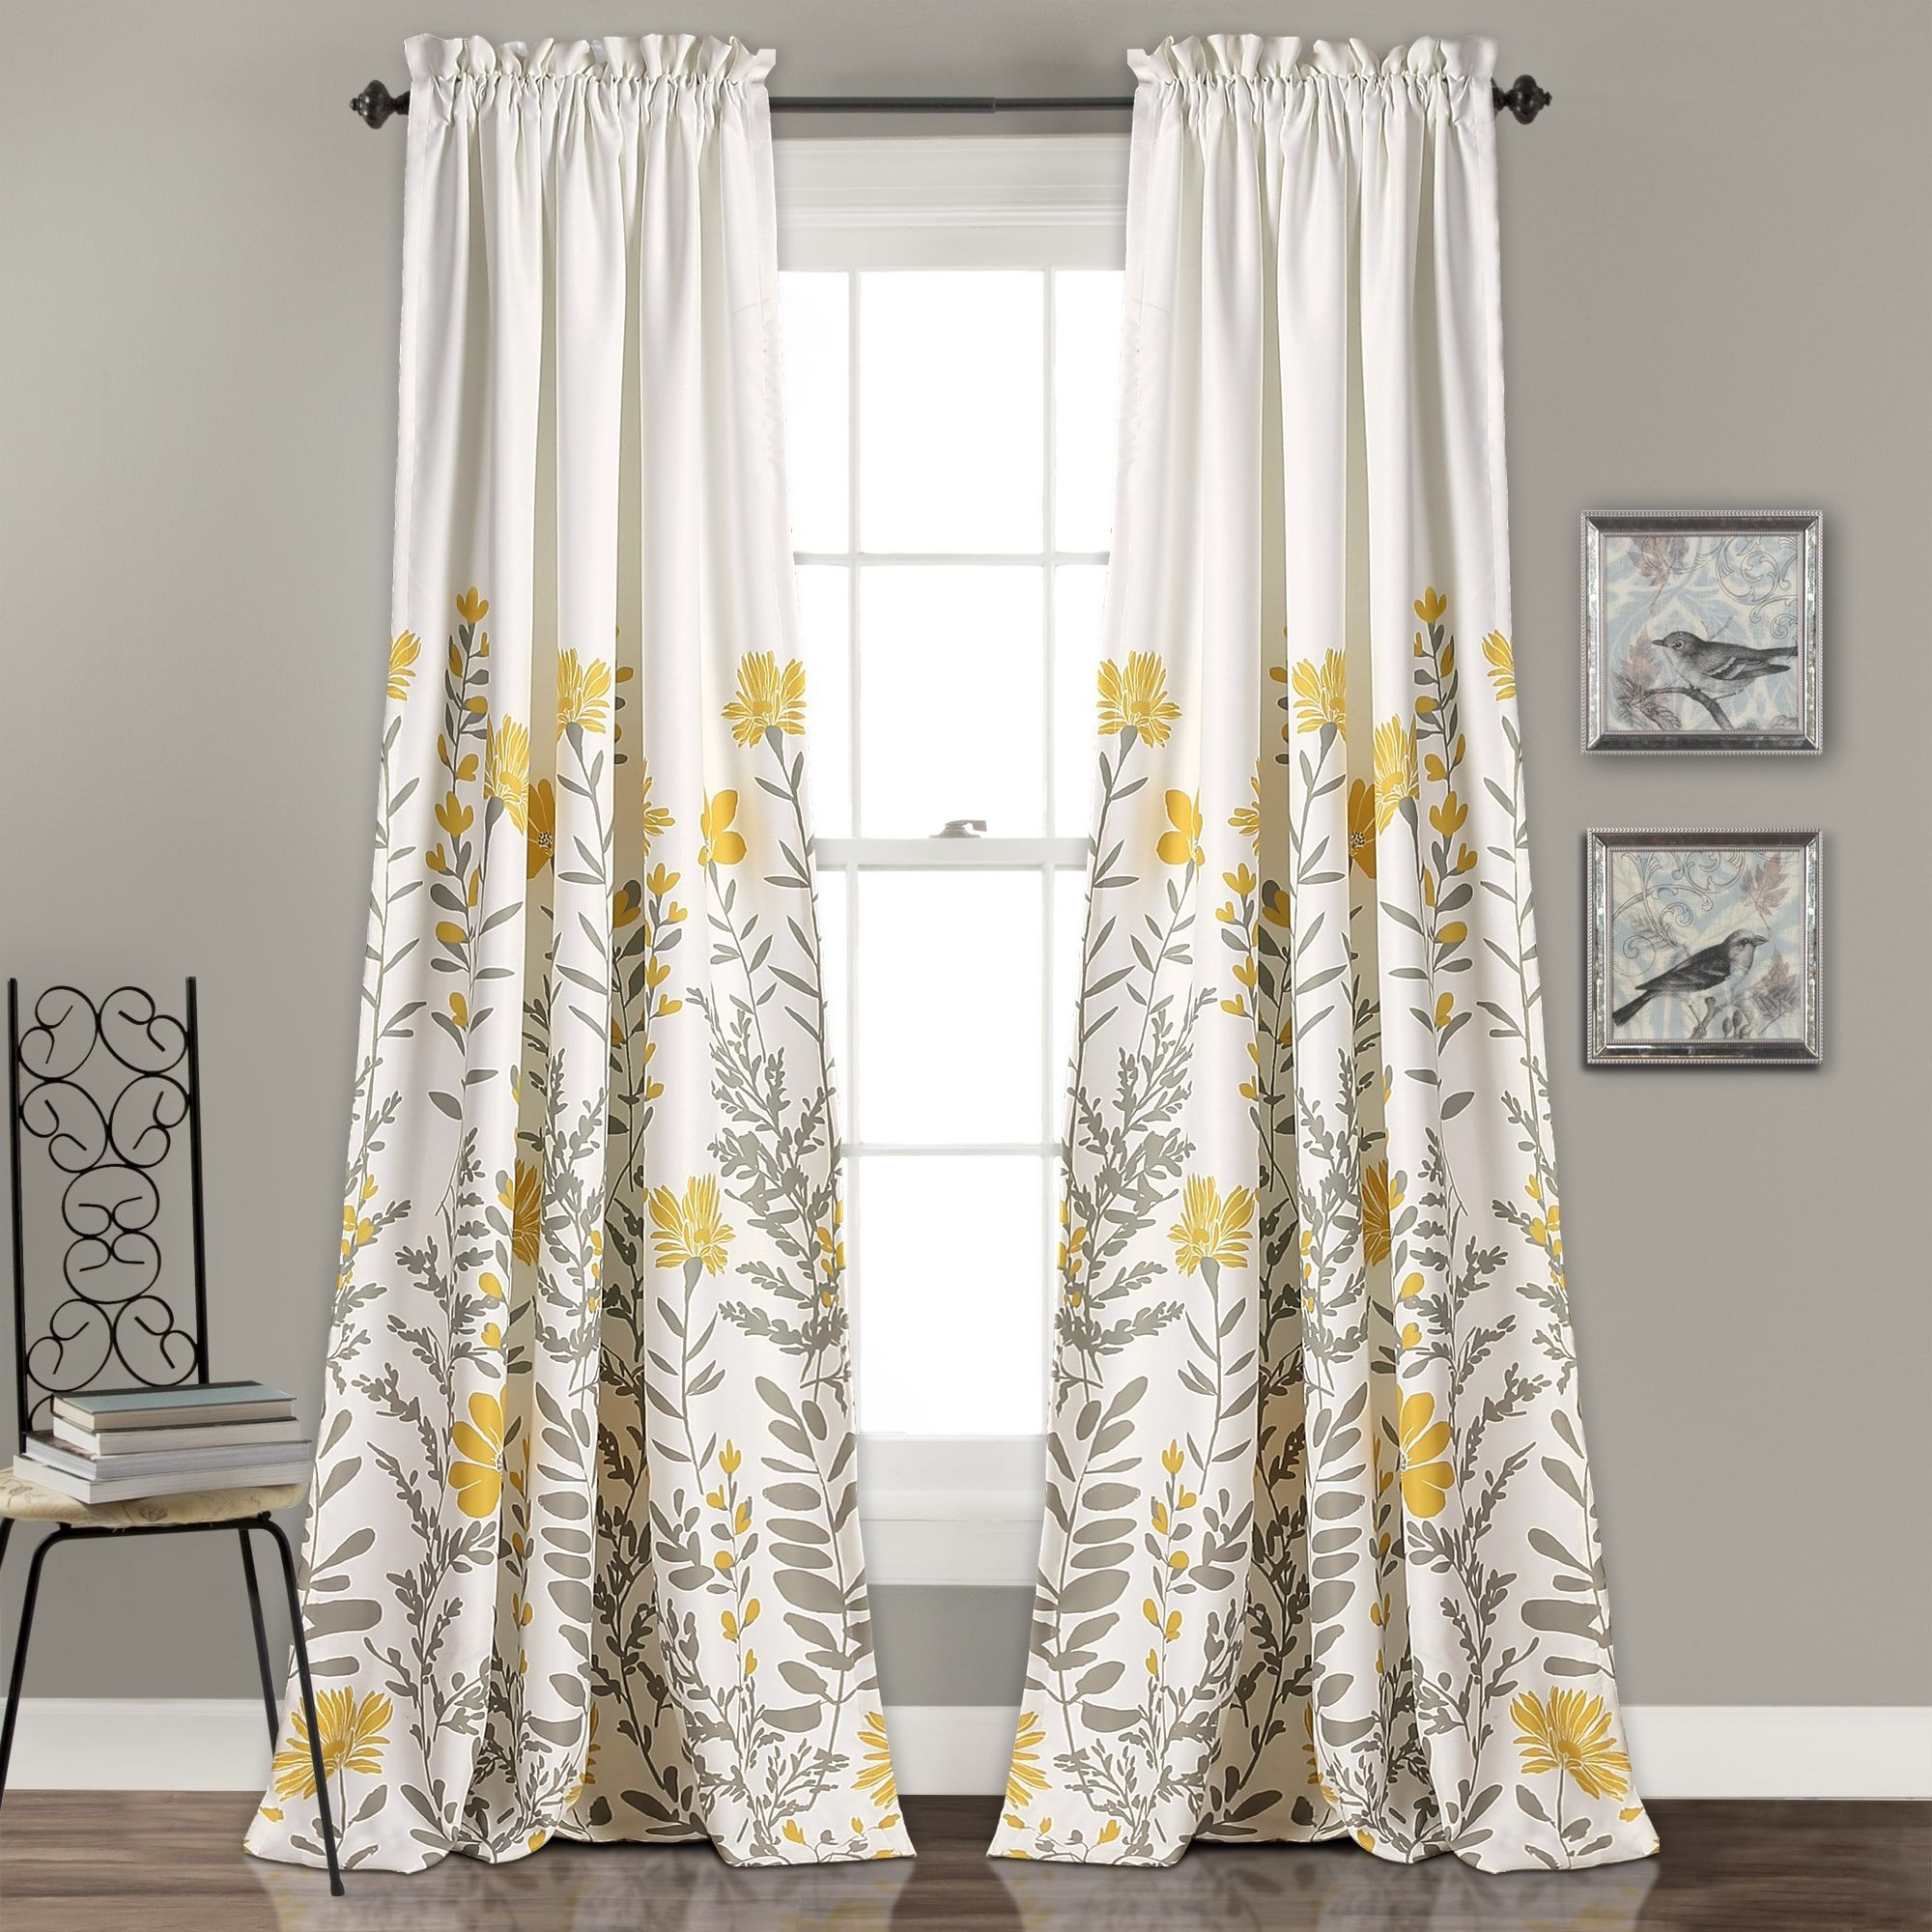 "Newest Maison Rouge Villon Room Darkening Curtain Panel Pair (84"" X Throughout Floral Pattern Room Darkening Window Curtain Panel Pairs (View 14 of 20)"